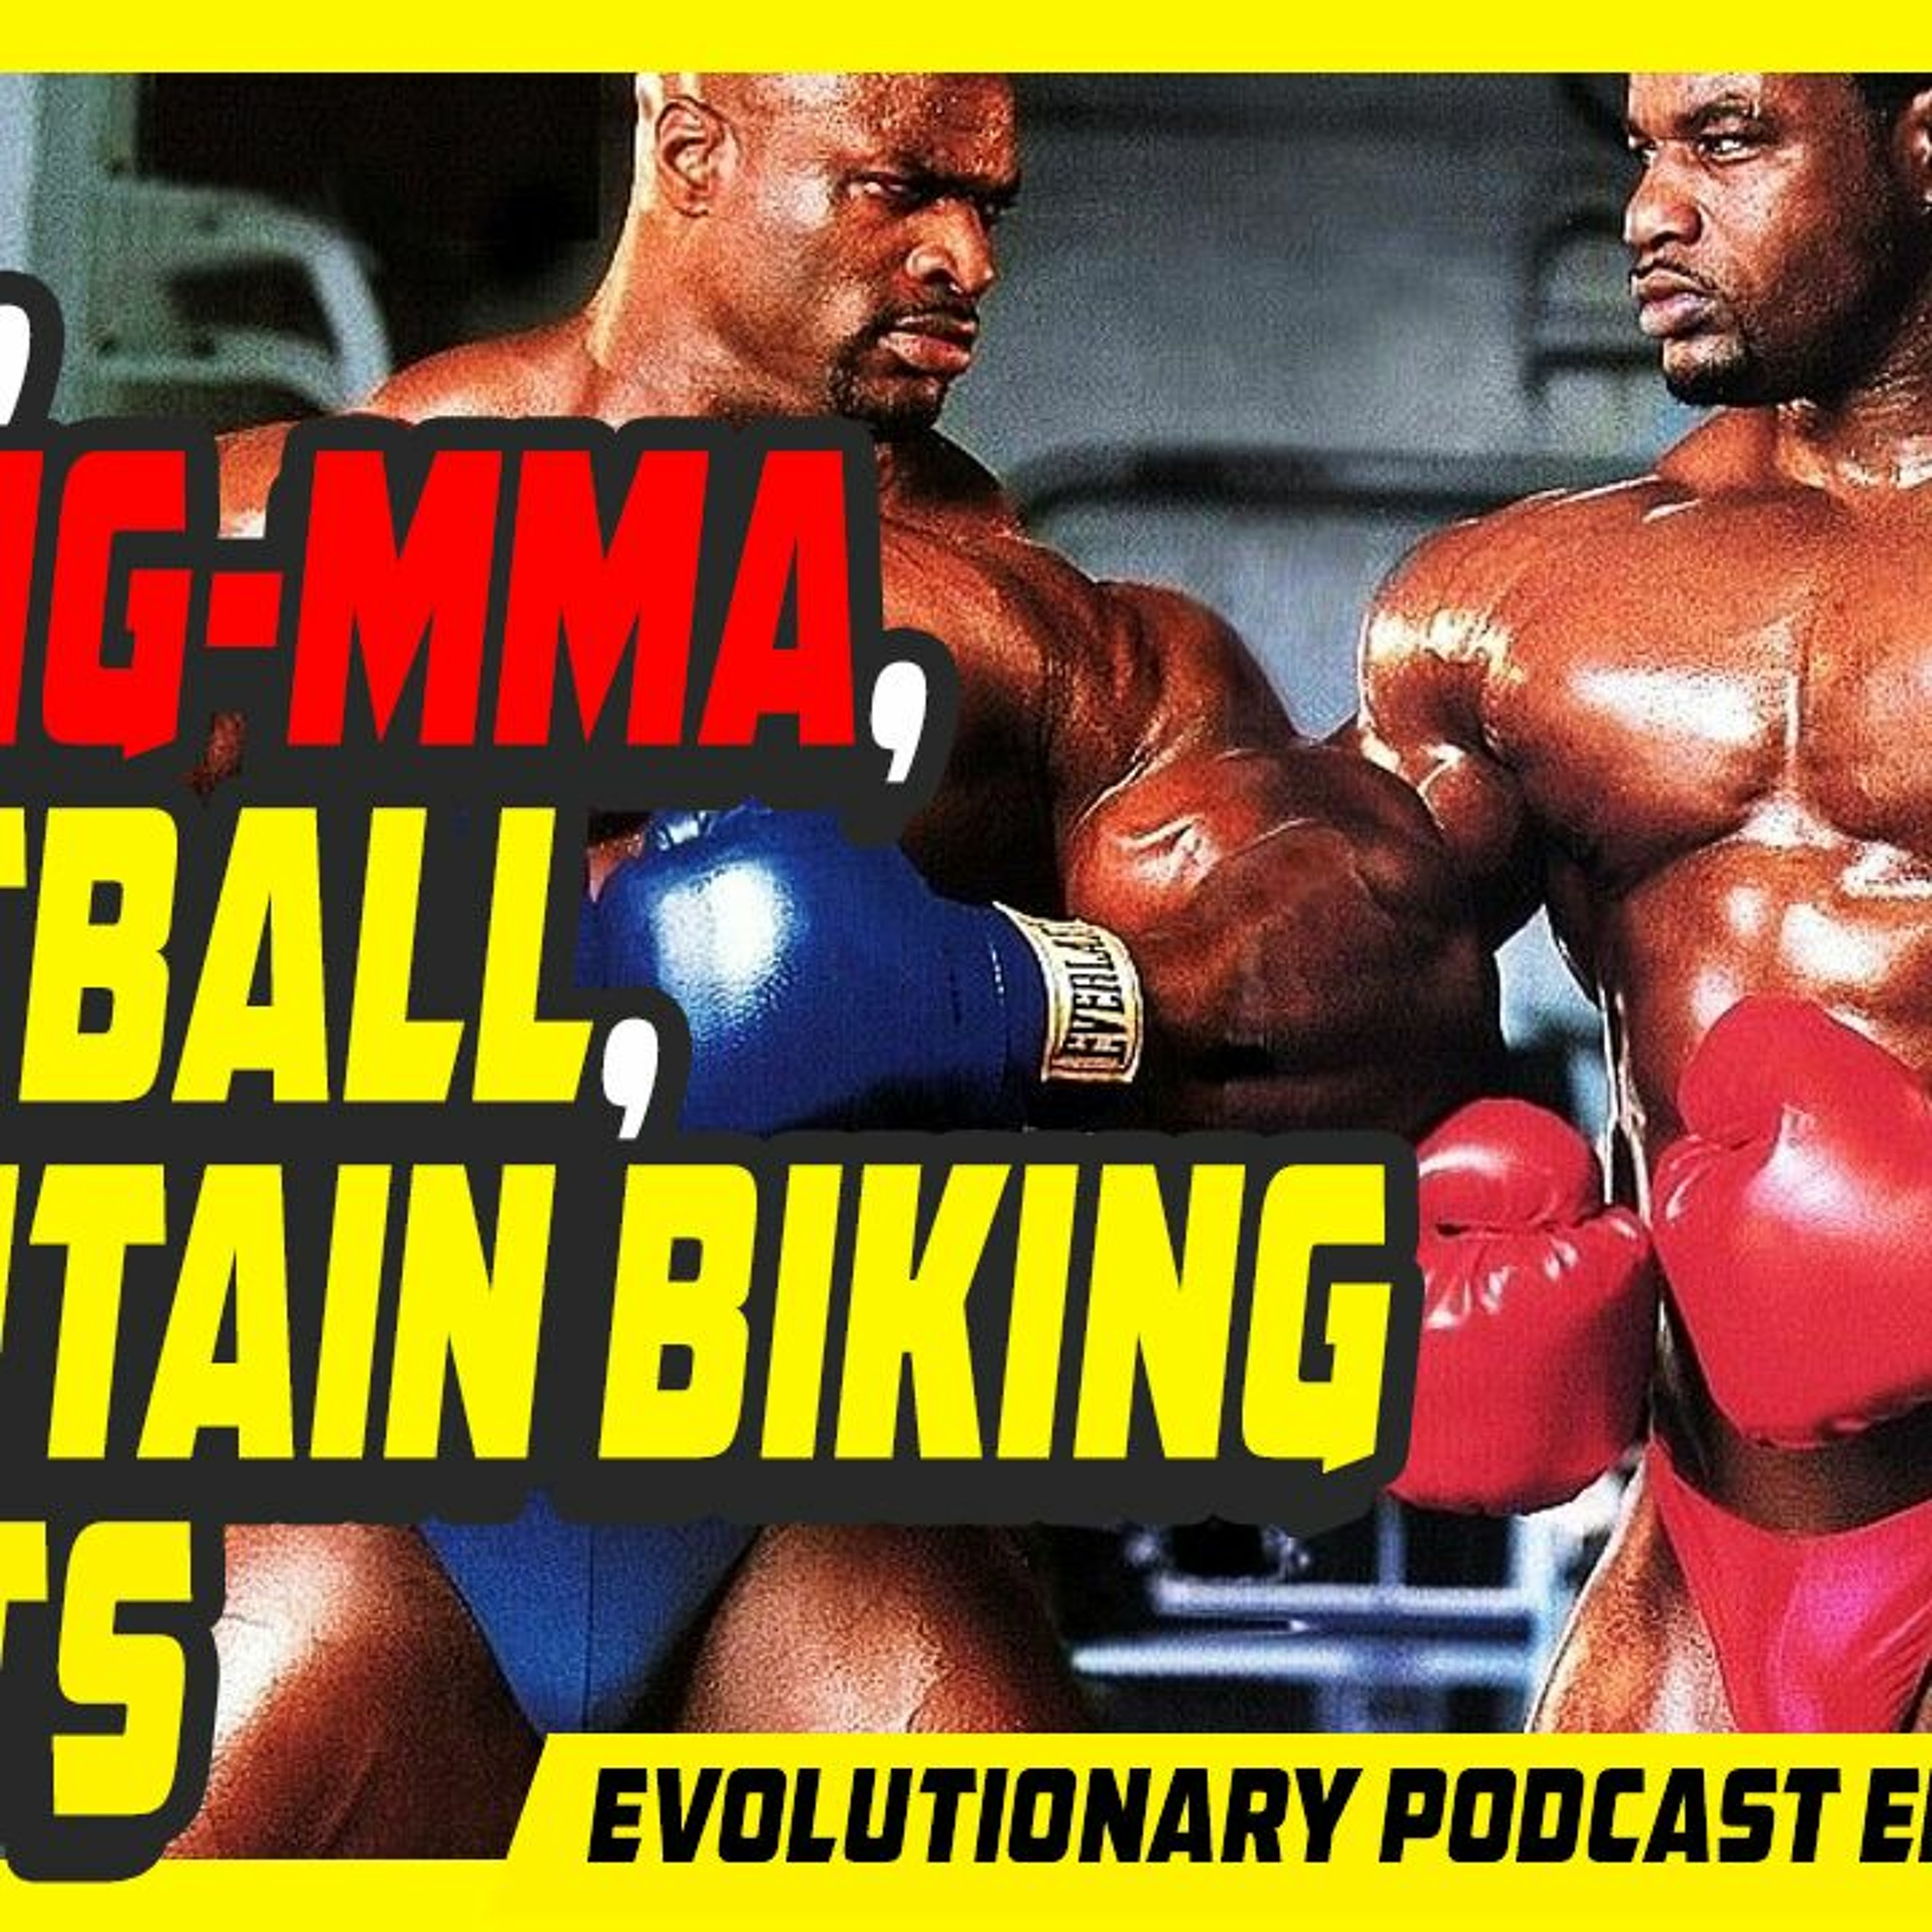 Evolutionary.org Podcast #406 - Yoga, Boxing-MMA, Paintball, Mountain Biking and Pets